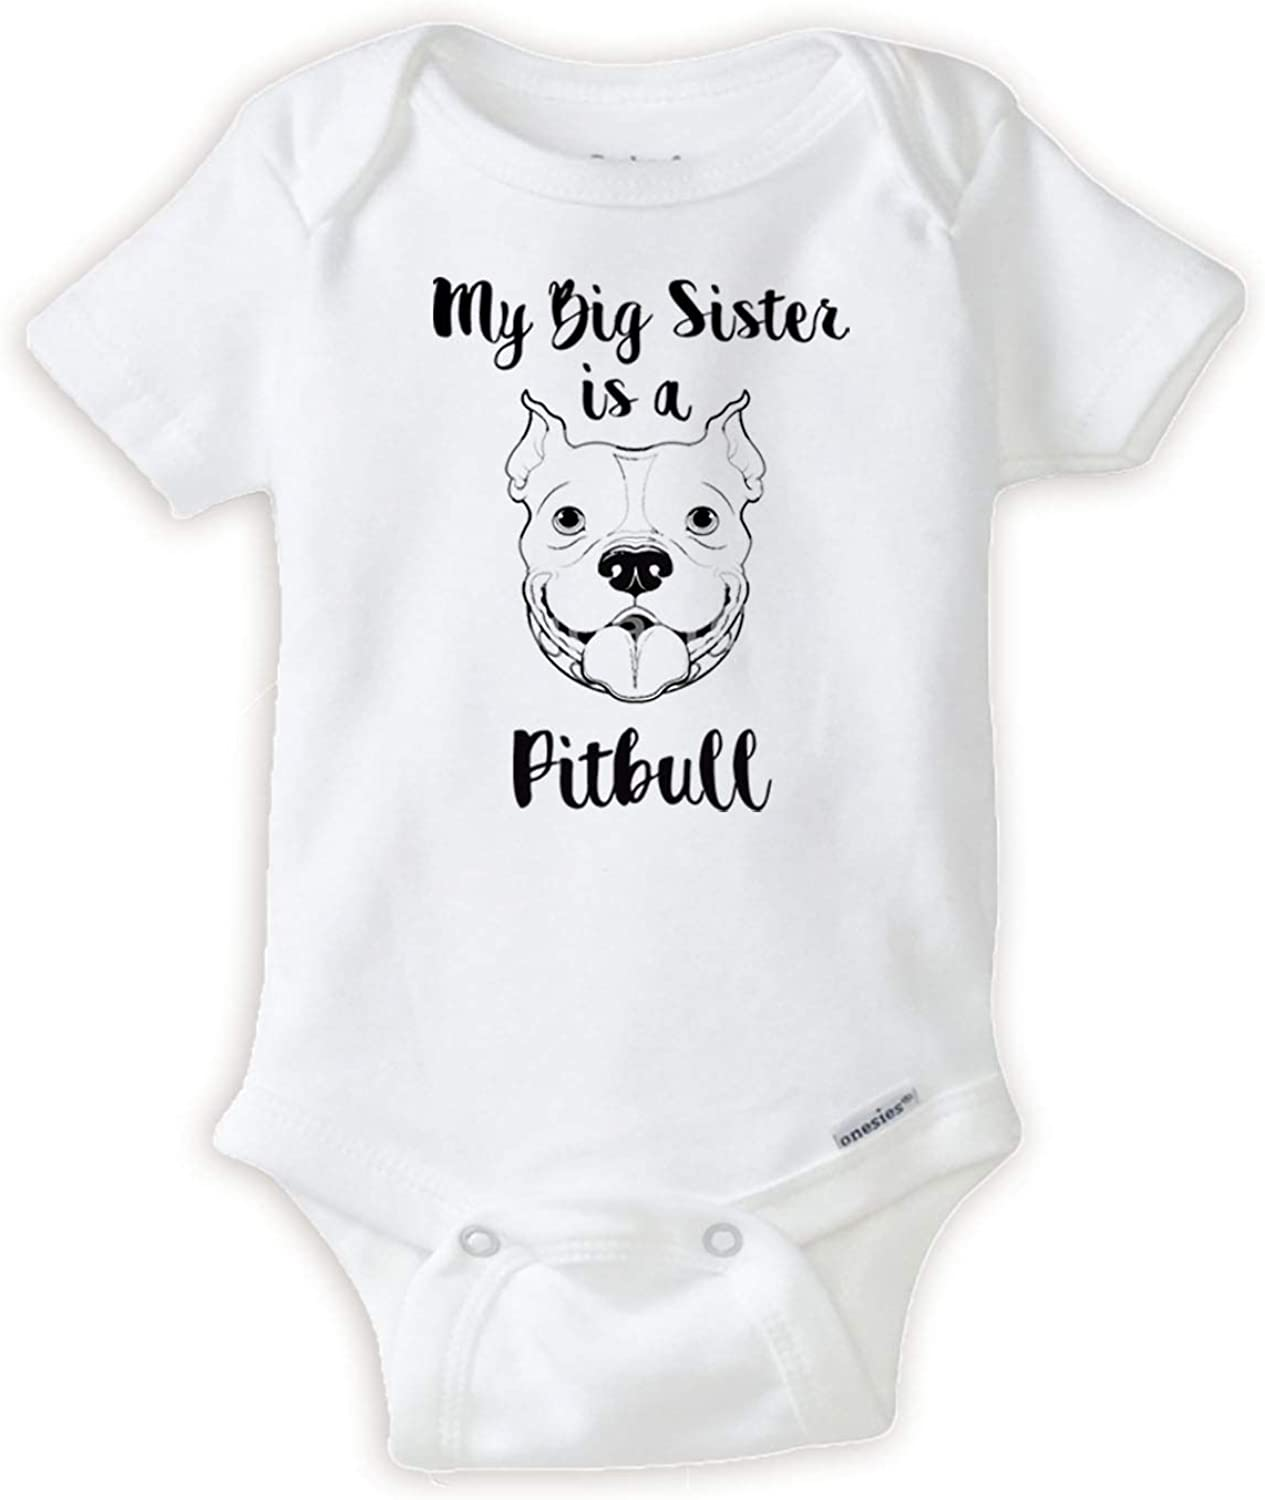 Rainbowhug Shiba Inu Dog Unisex Baby Onesie Cartoon Newborn Clothes Unique Baby Outfits Soft Baby Clothes